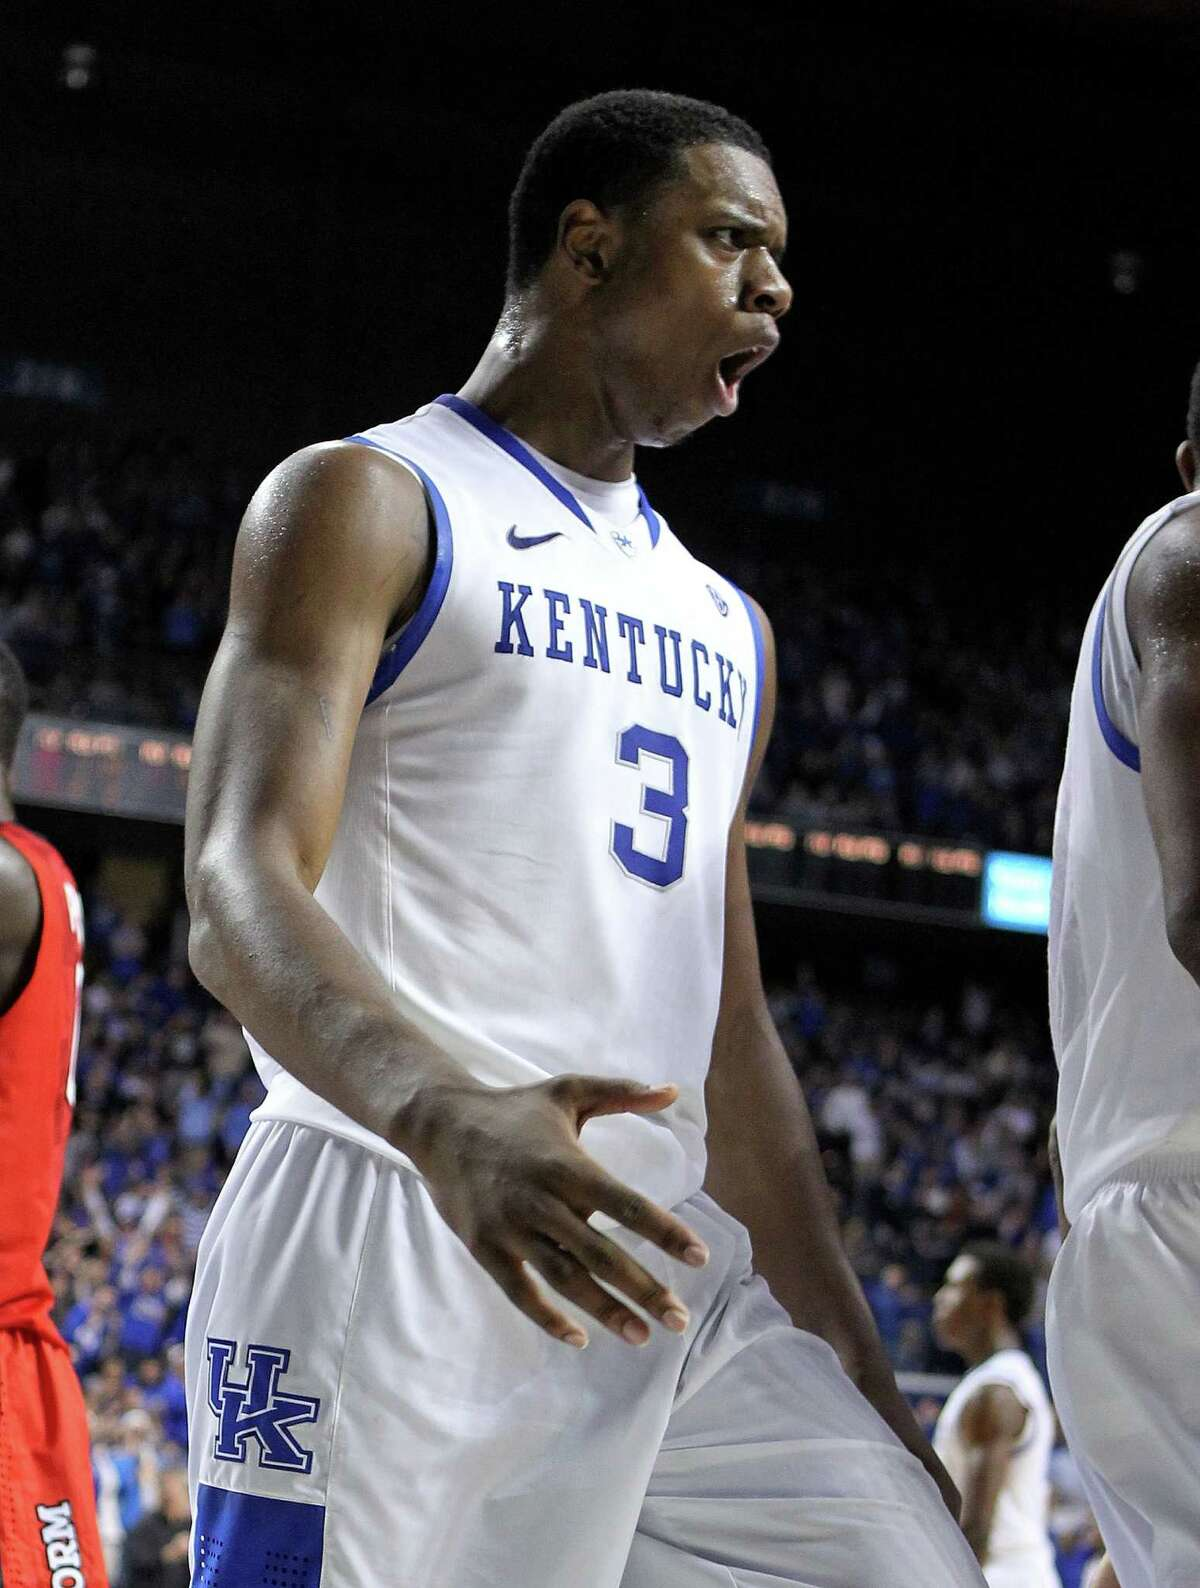 Terrence Jones played his college ball at Kentucky, where he won a National Championship at the conclusion of the 2011-12 season.